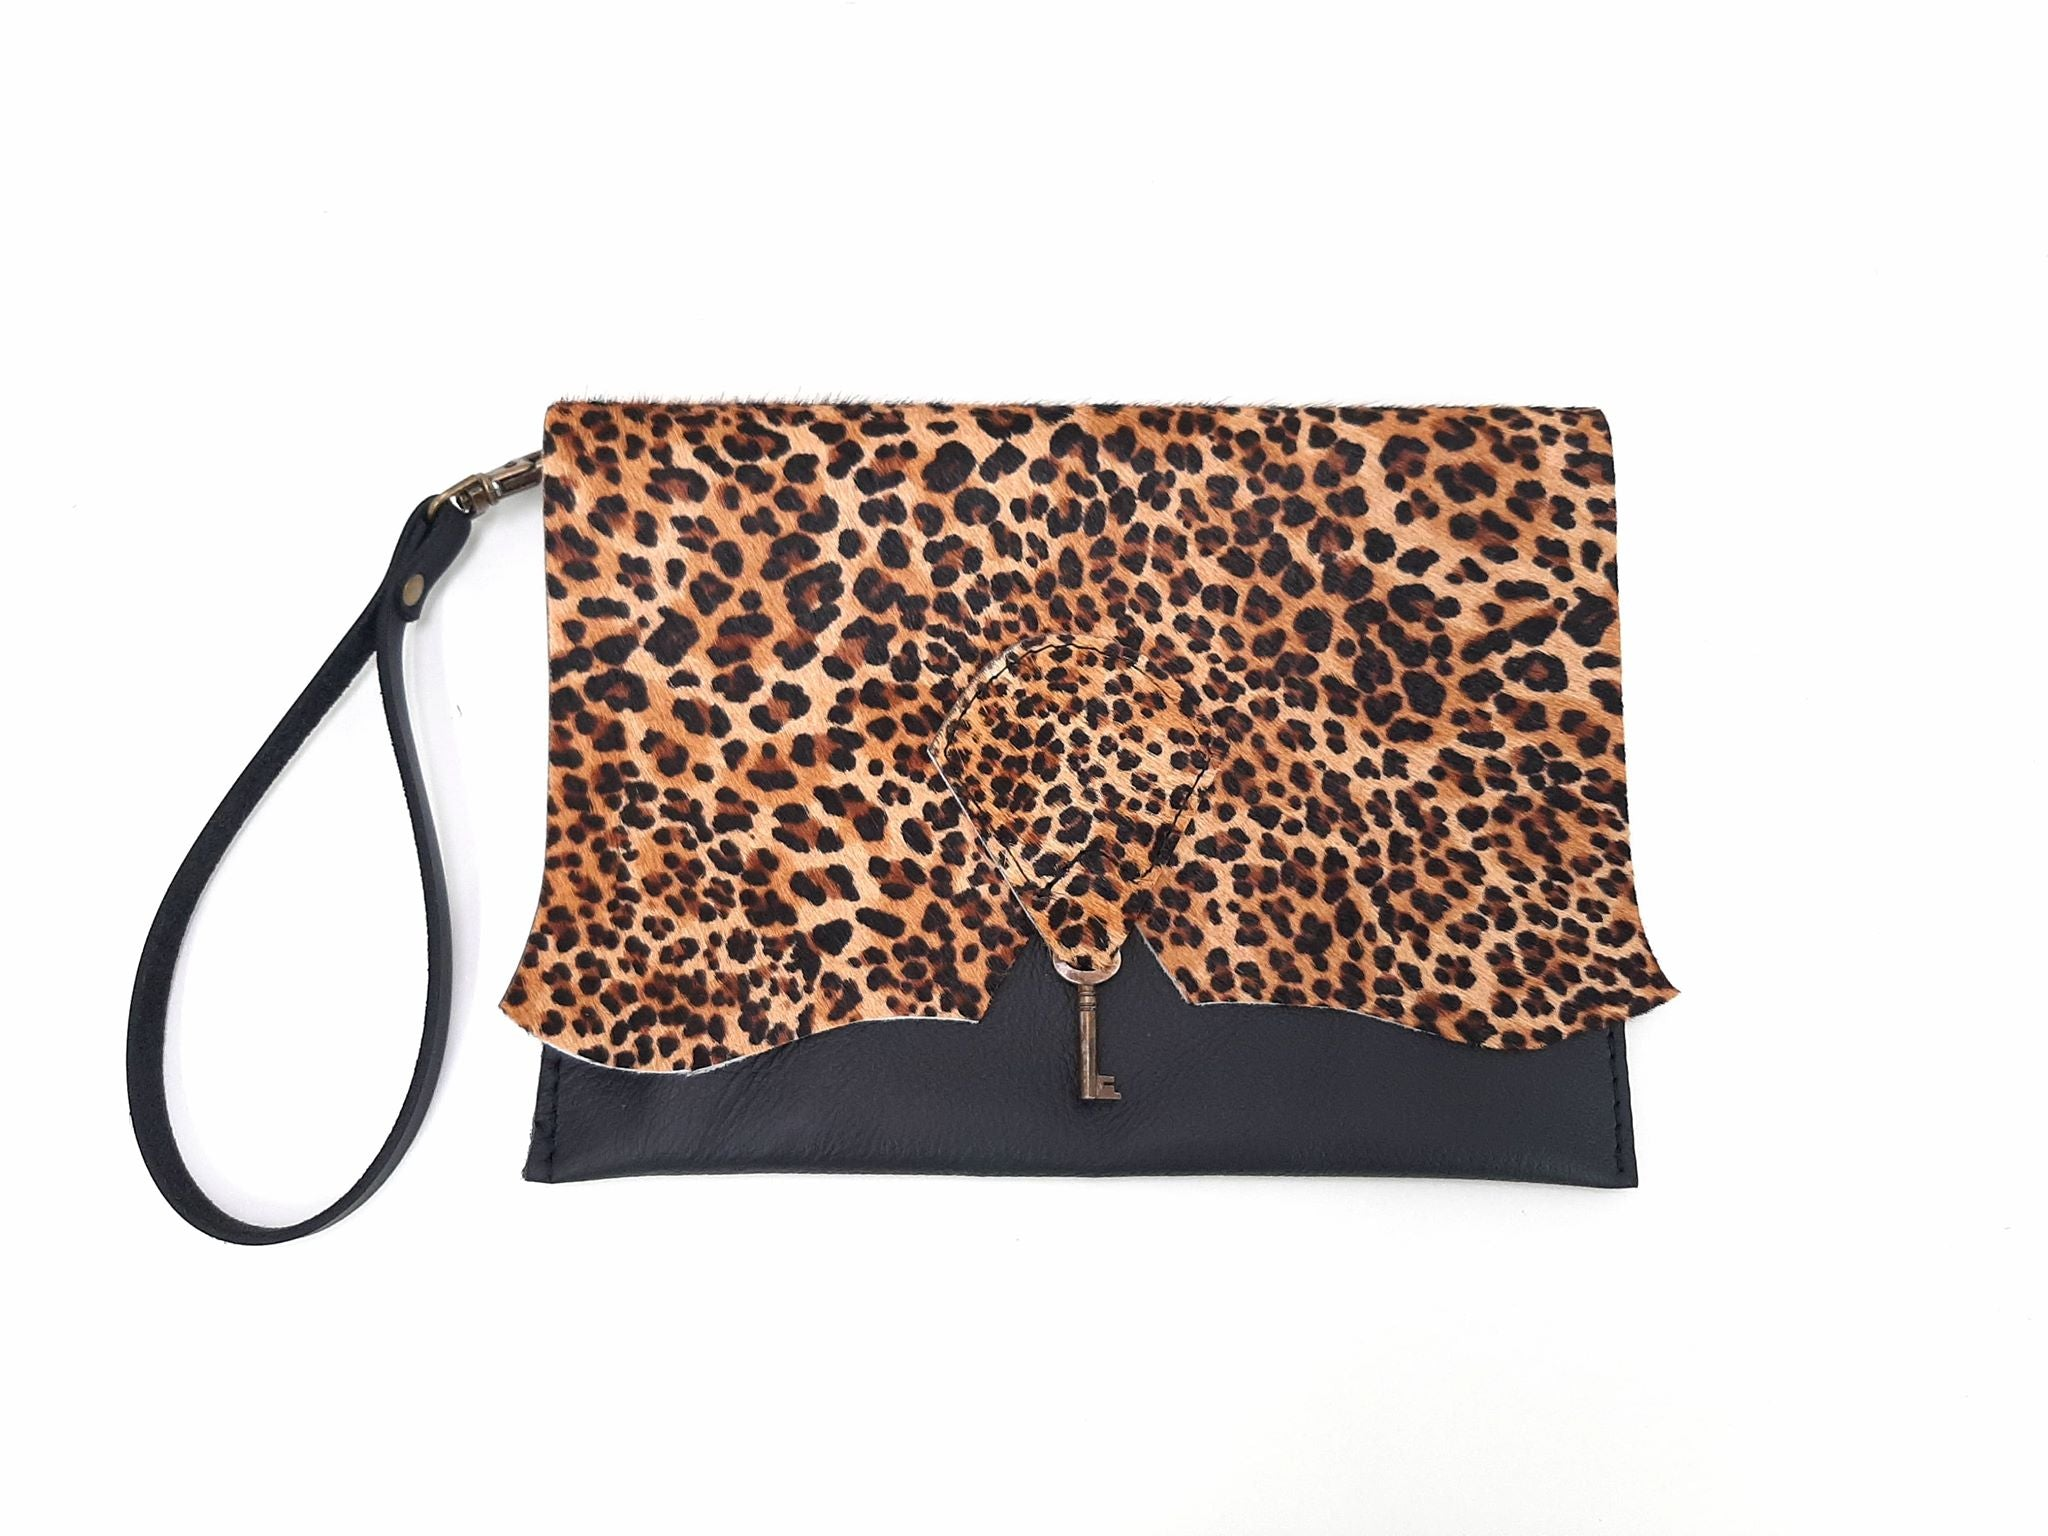 Raw Edge Leather Clutch Purse with Vintage Key Detail - Jaguar & Black - Coterie Leather Bags